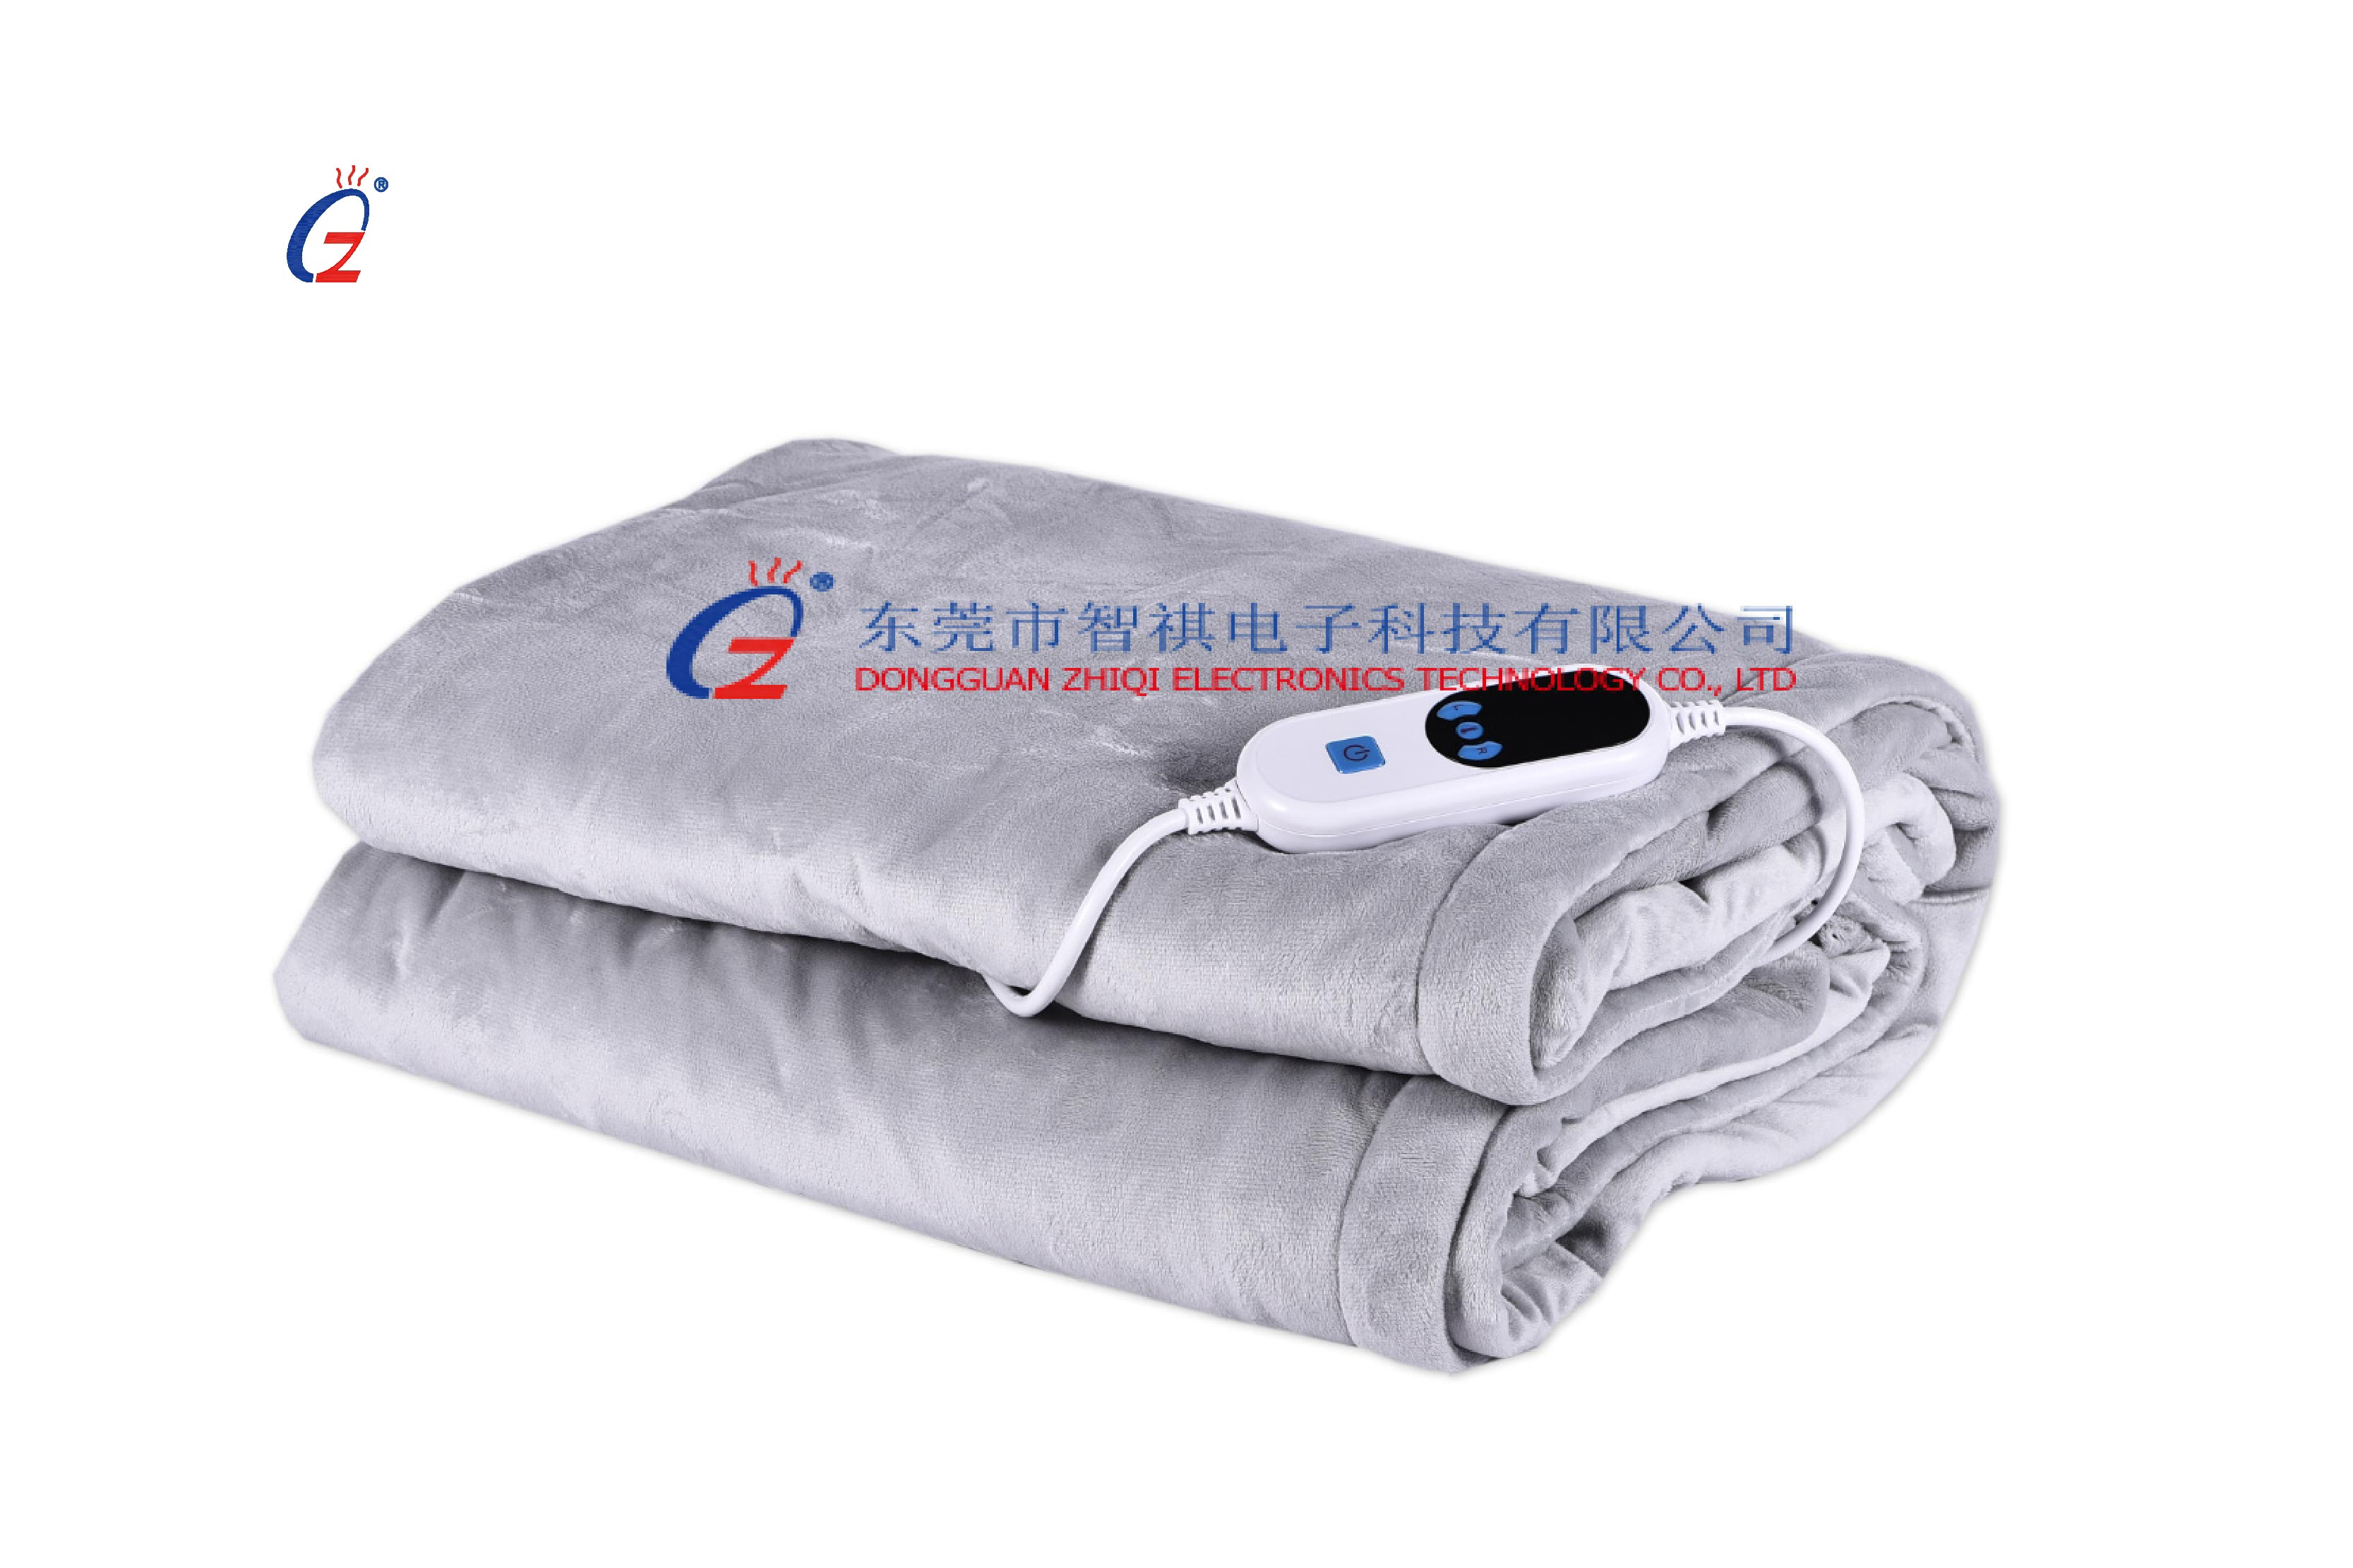 Fast heat overblanket by Zhiqi Electronics